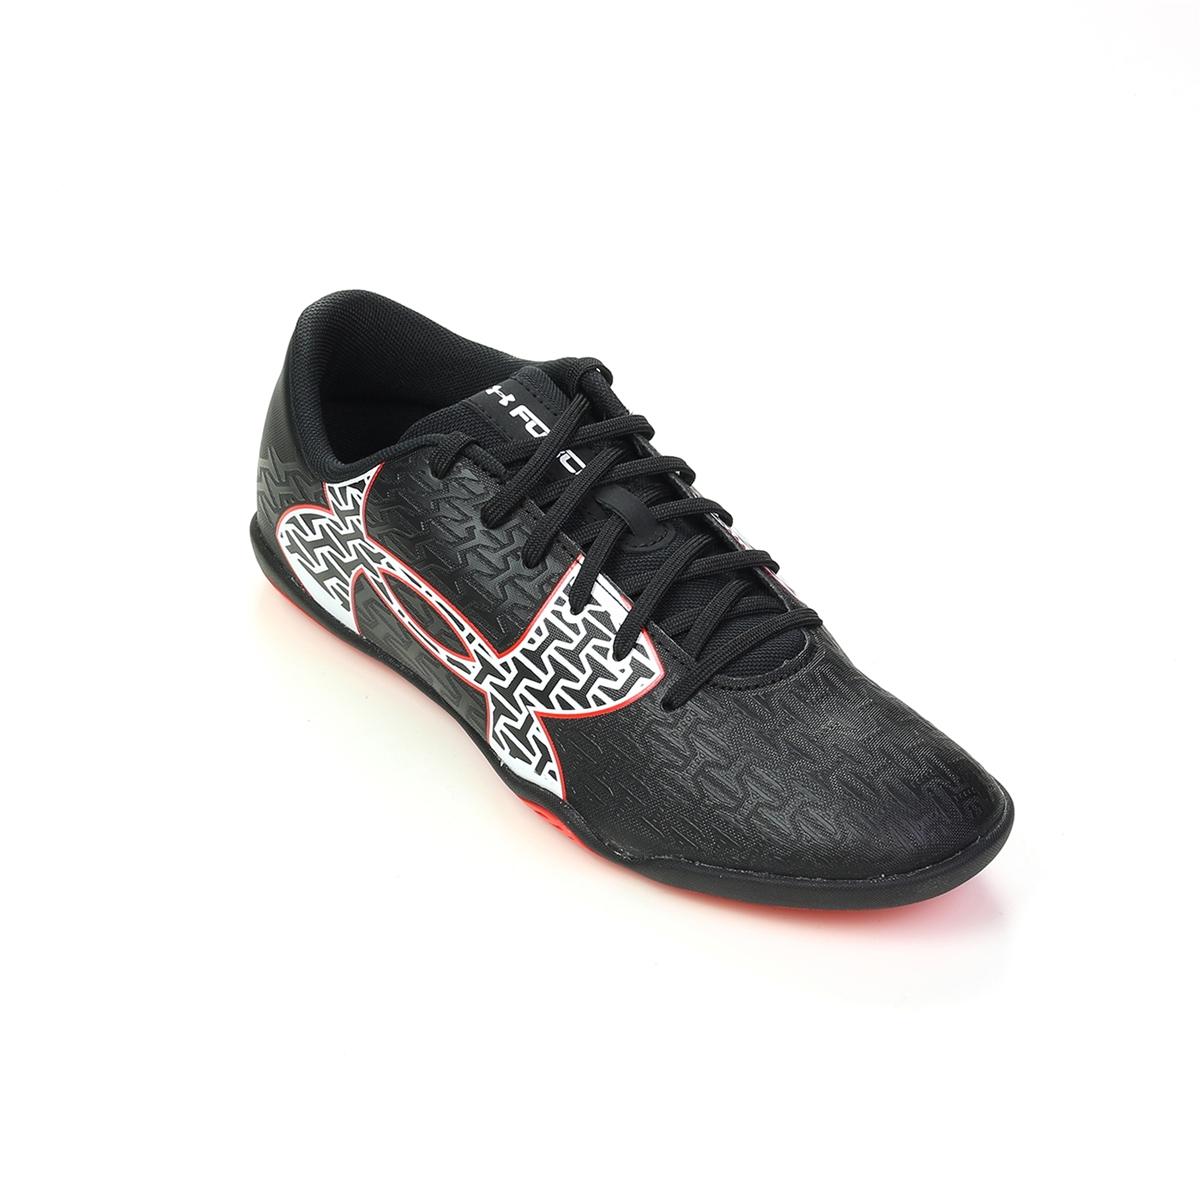 da0abc4775b3  57.49 - Under Armour Clutchfit Force 2 Indoor Soccer Shoes (Black ...